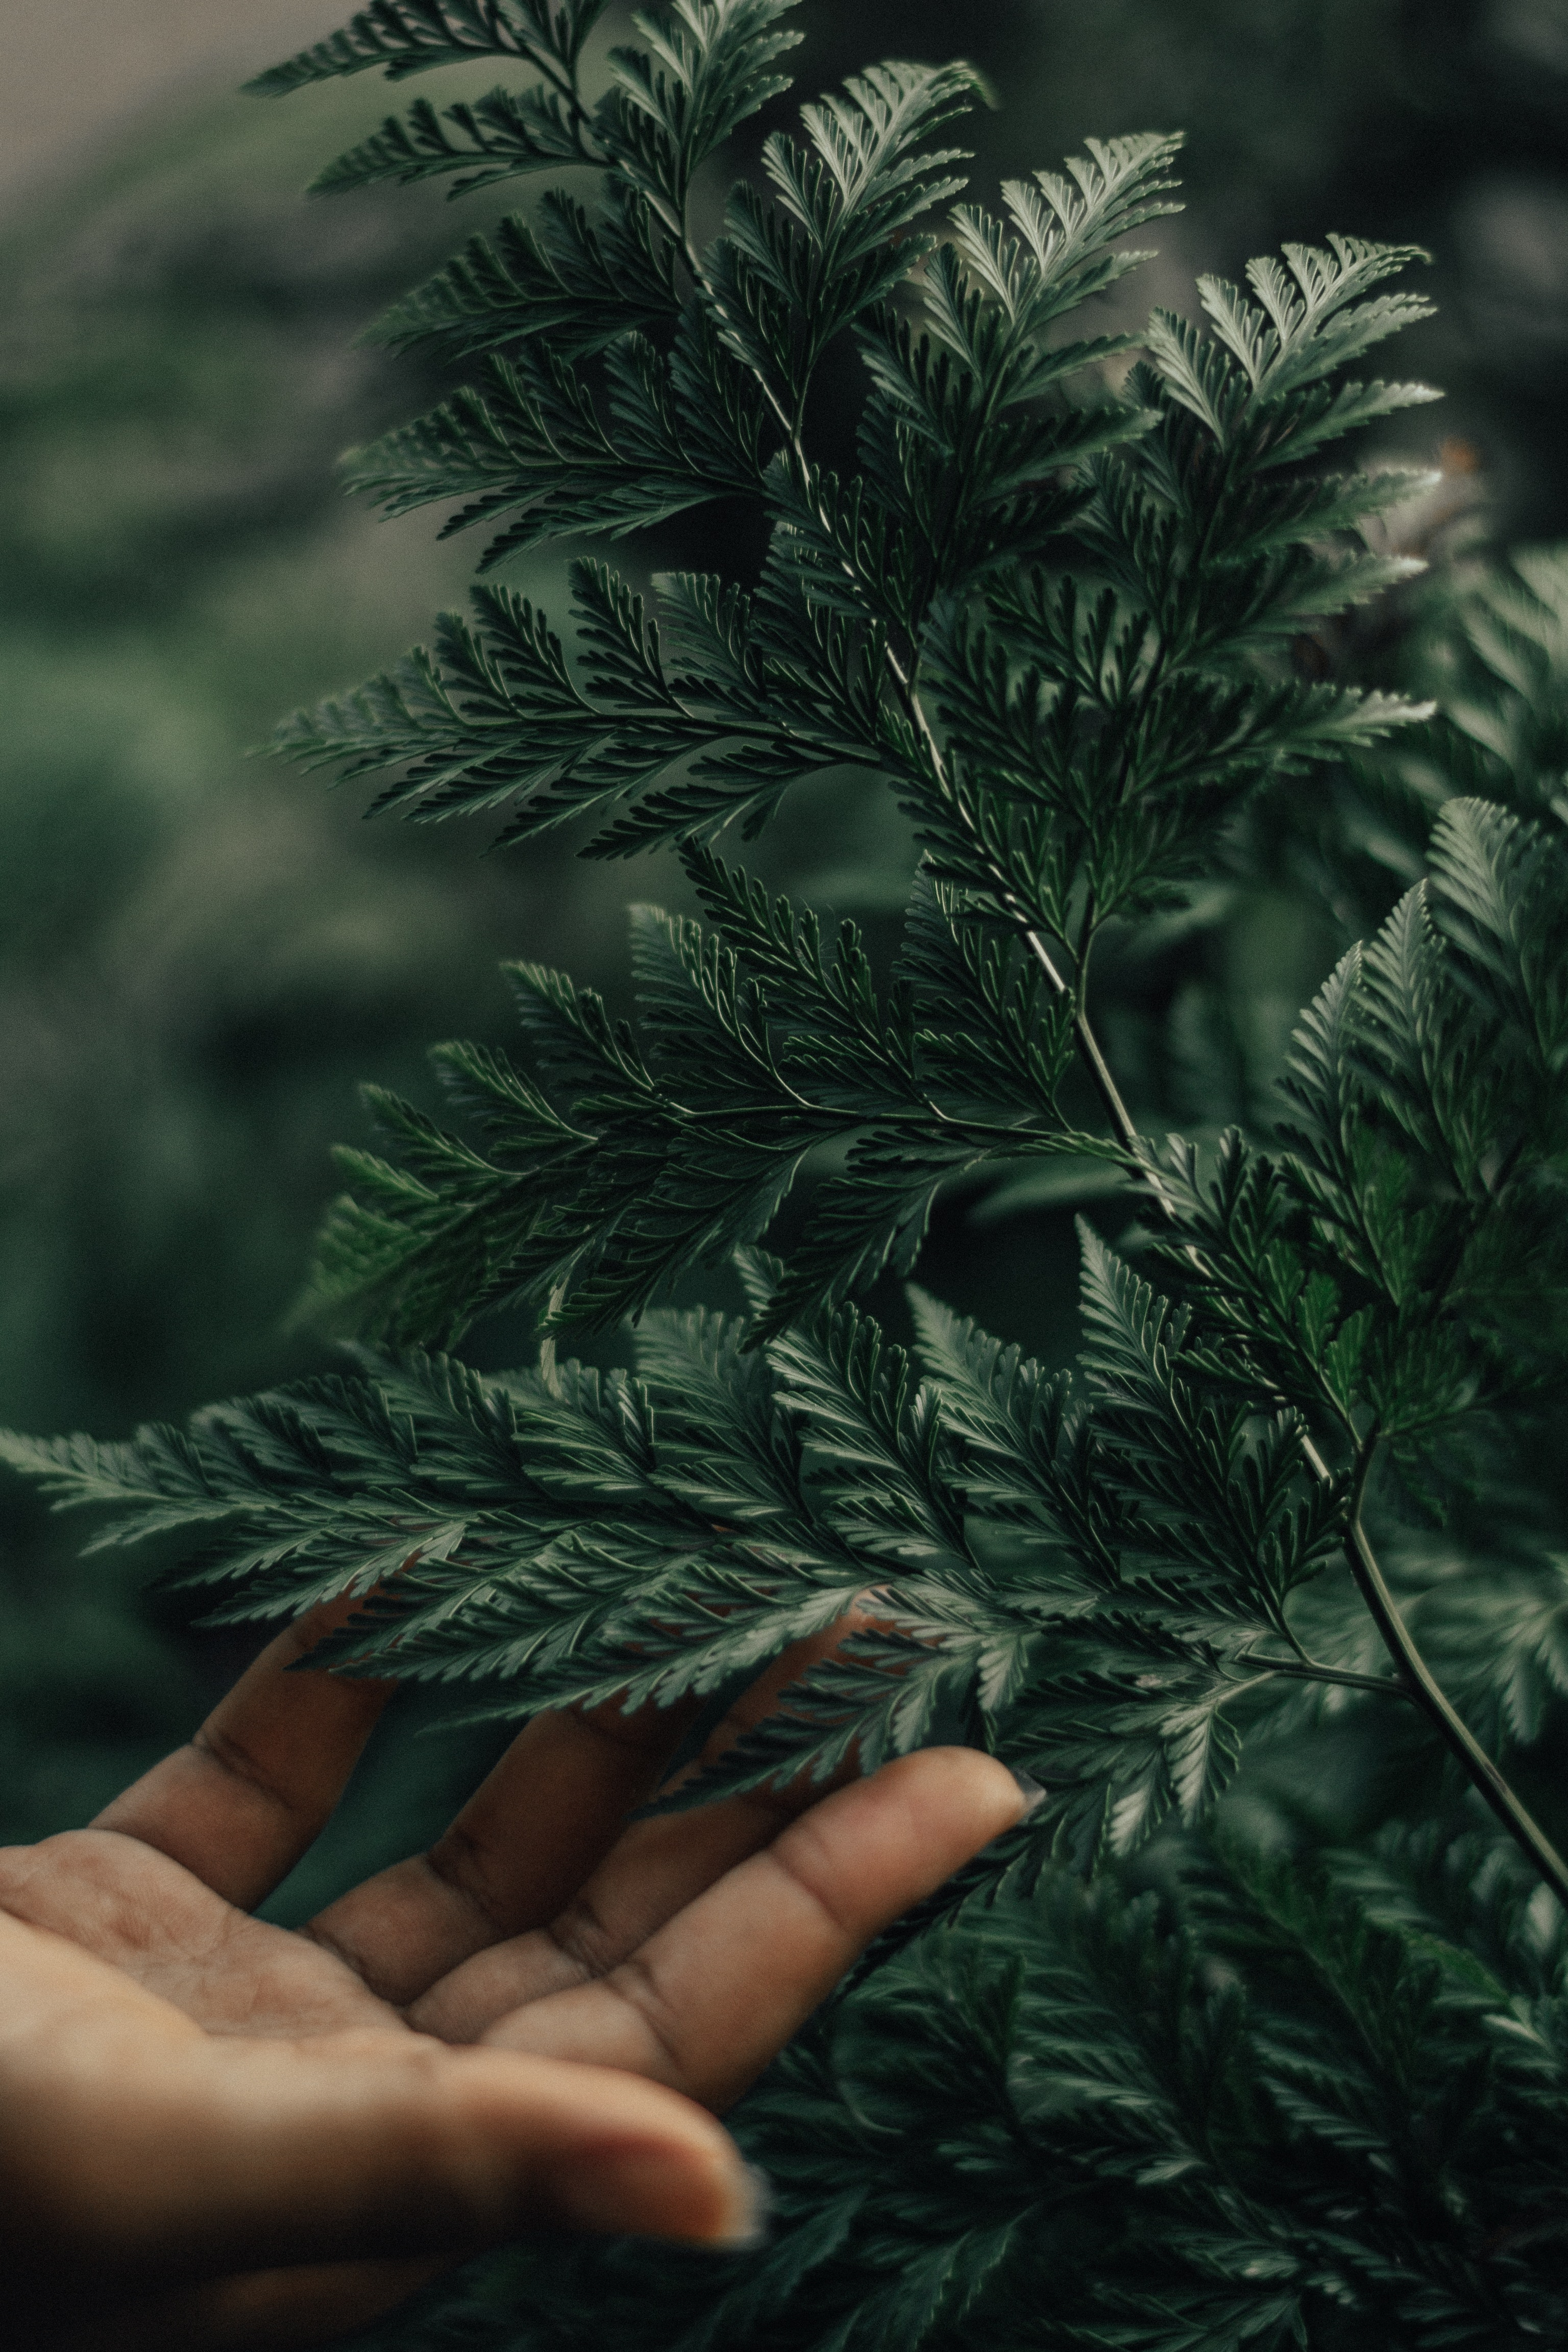 Close-up photo of a person touching green leaves